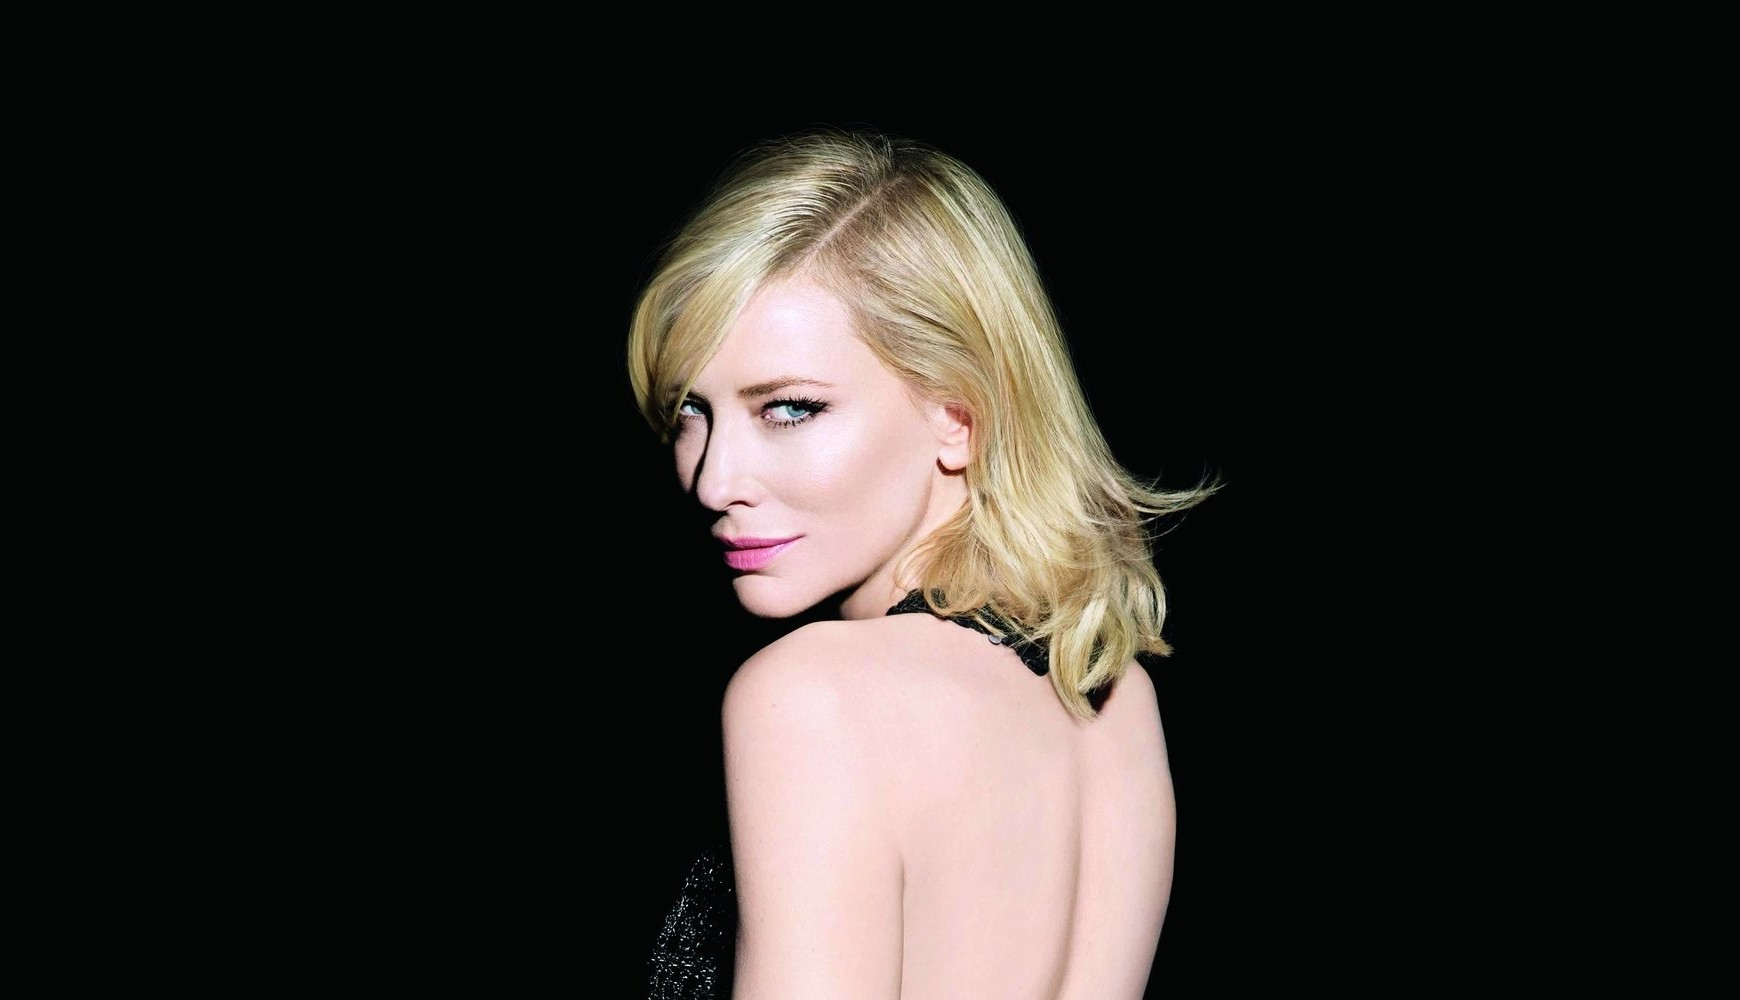 Cate Blanchett Fan: Updates